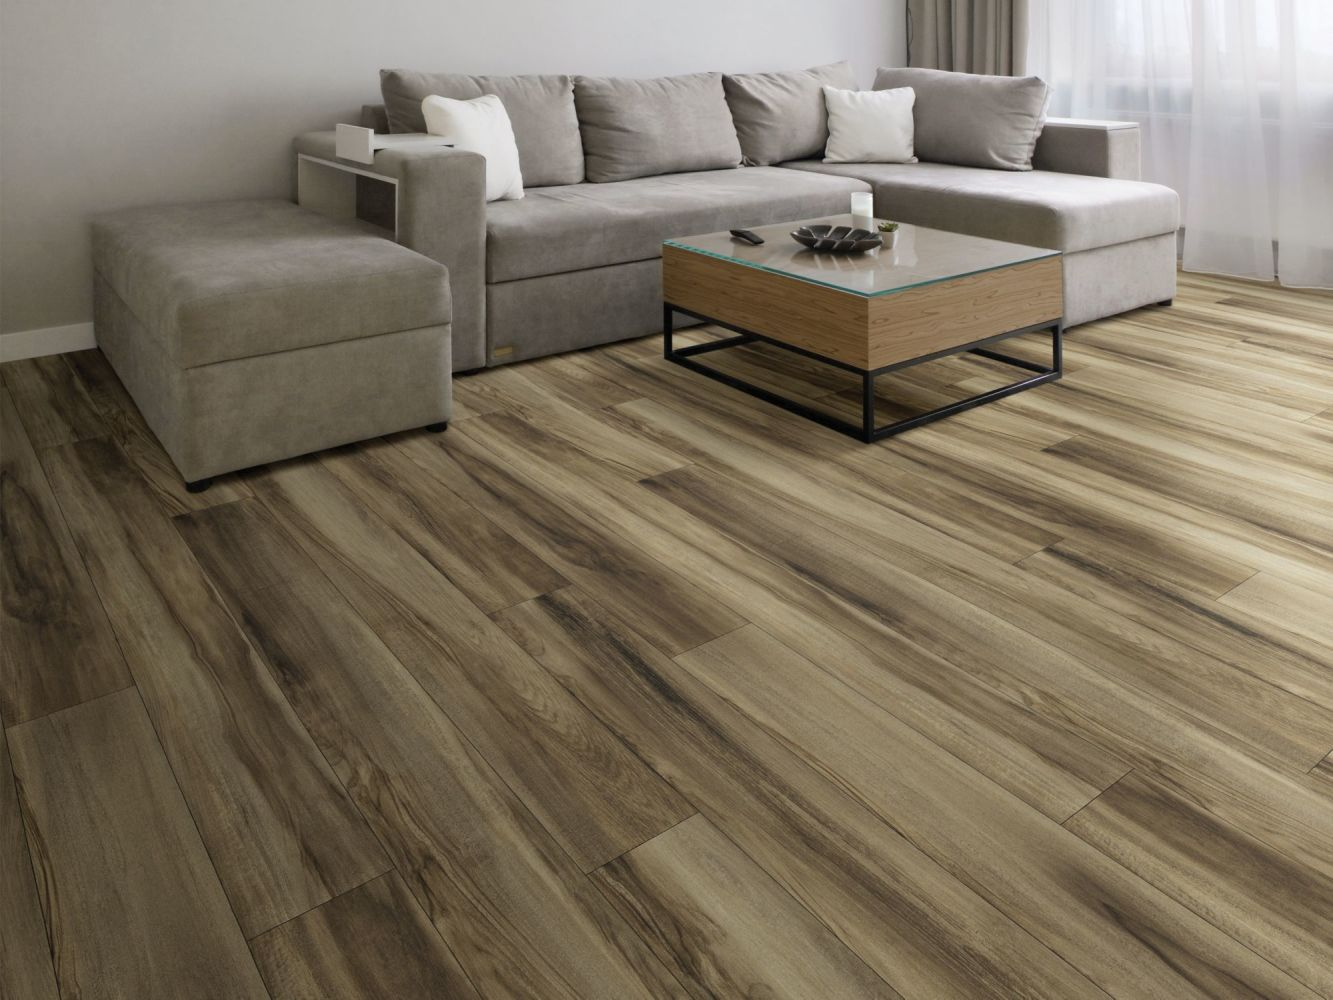 Shaw Floors Resilient Residential Urban Woodlands 65g Pennypack 00248_VG088